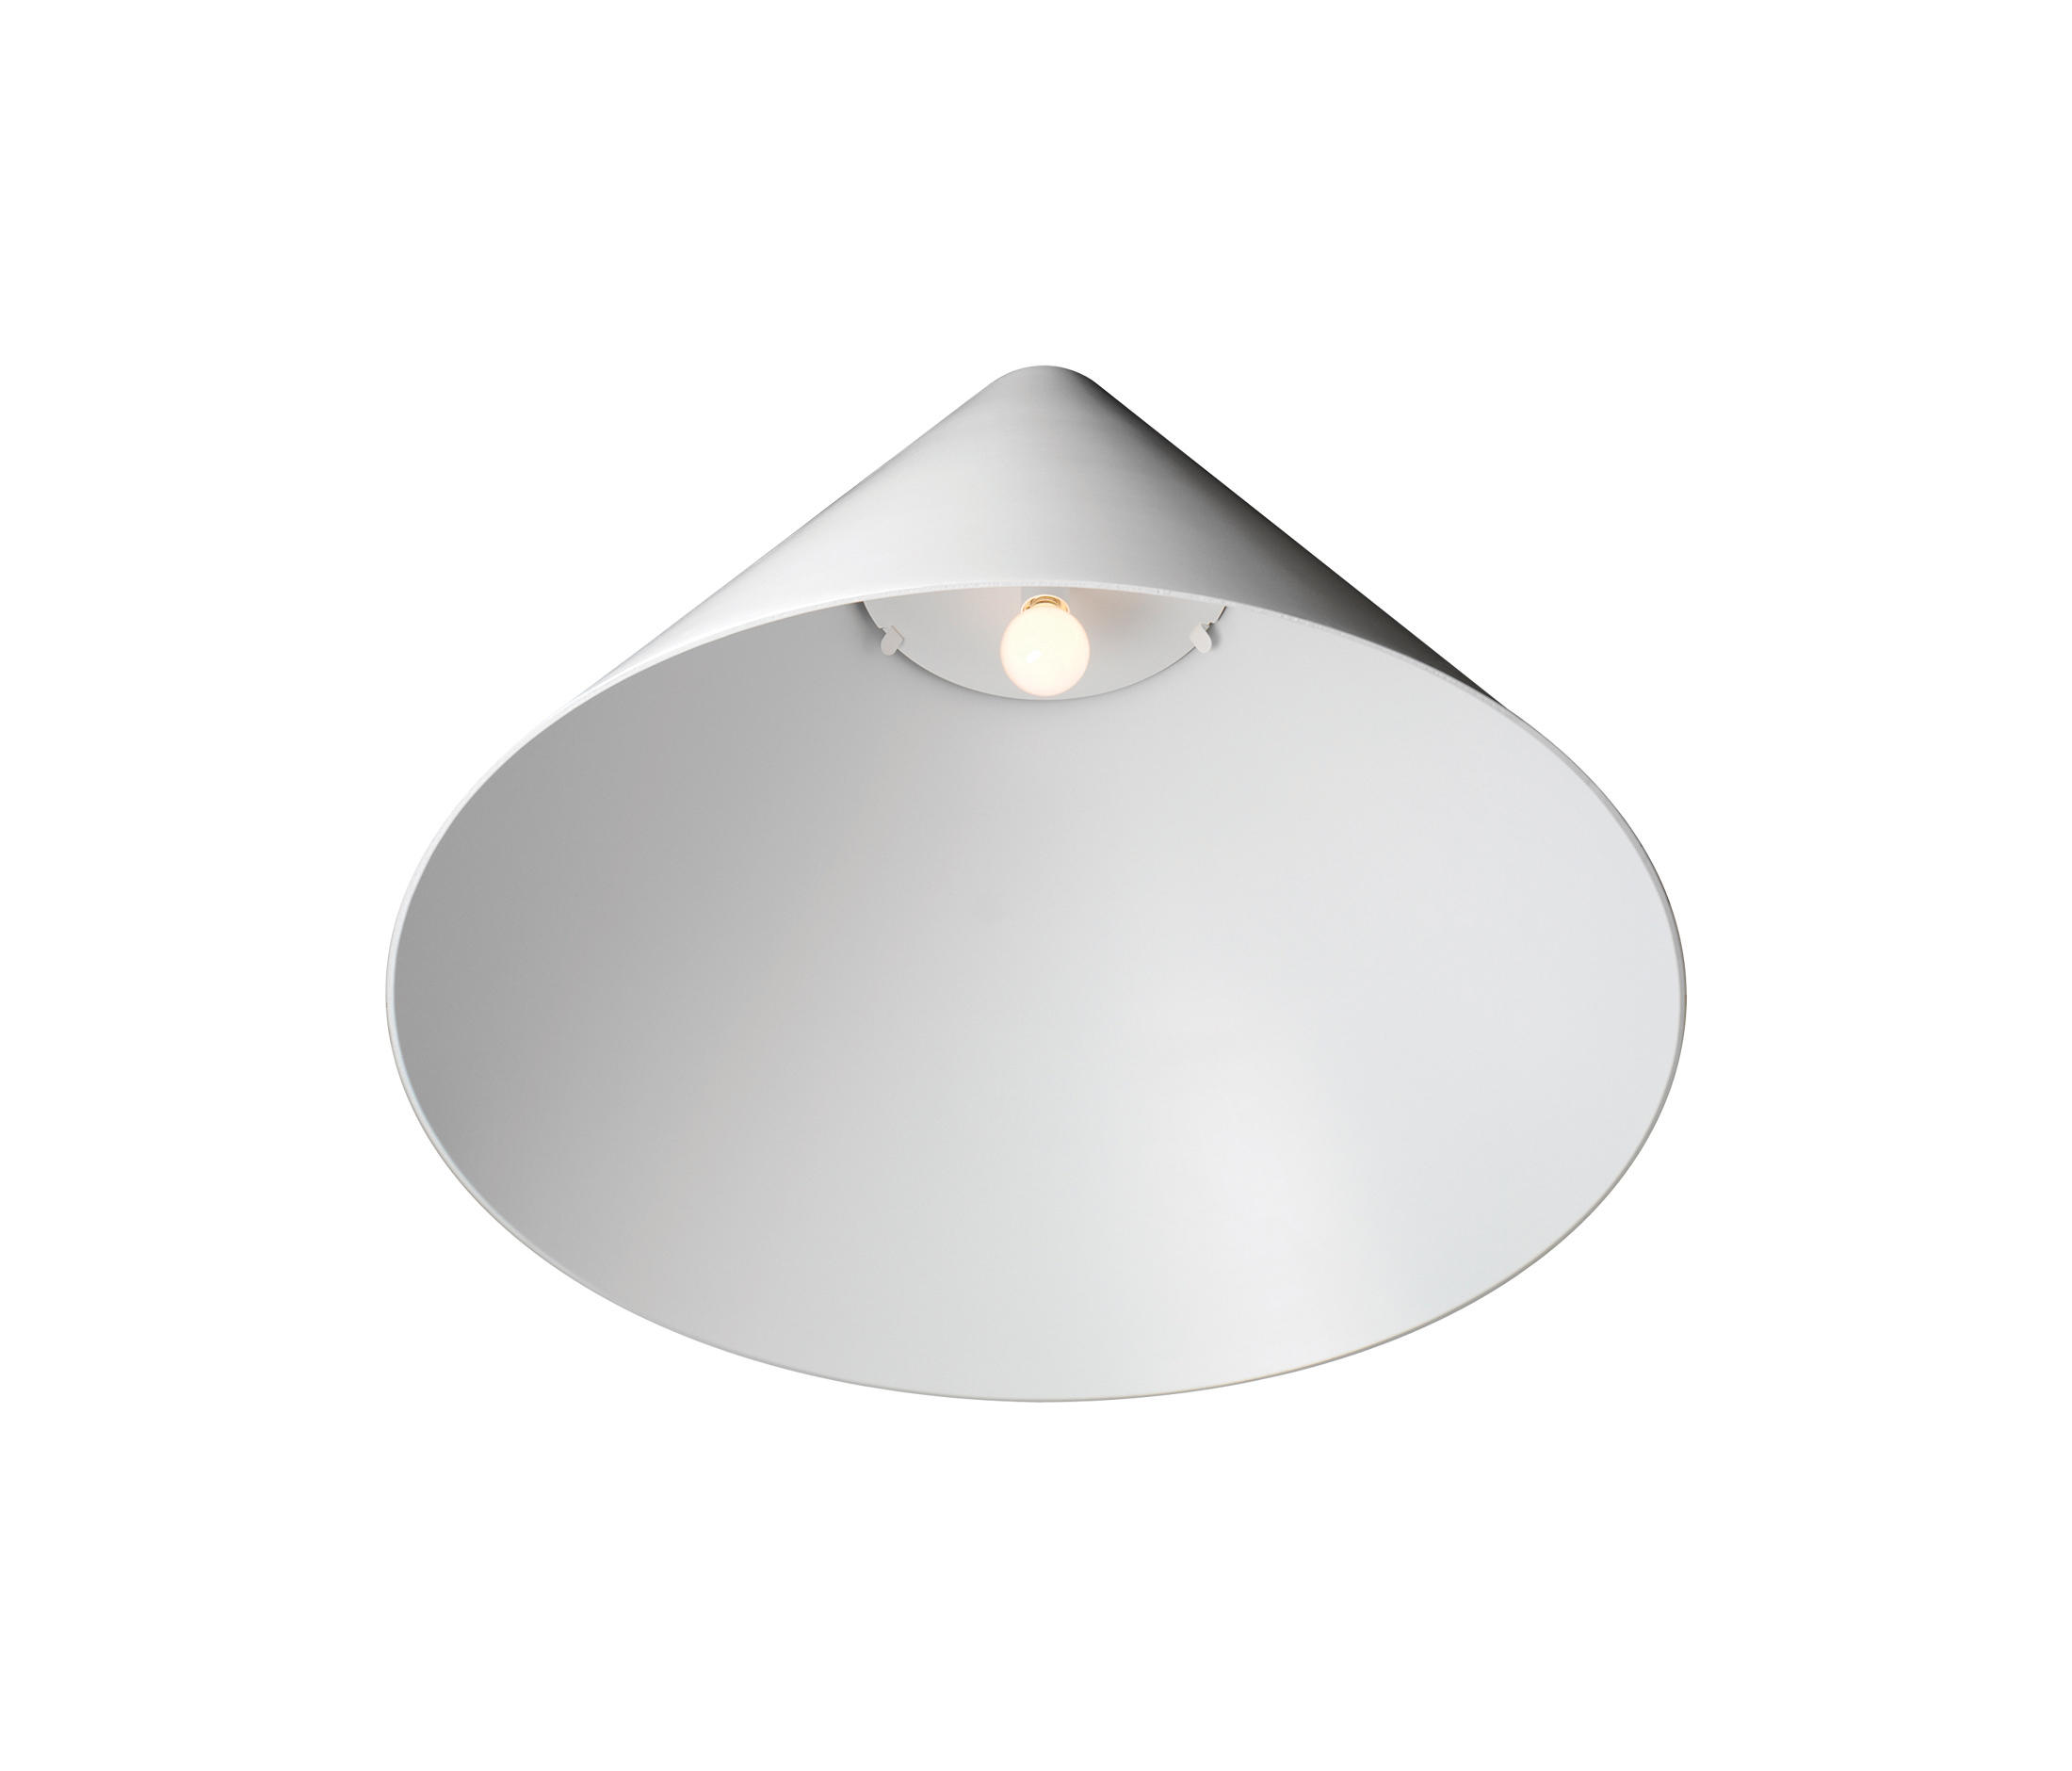 Cone Ceiling Lights From Tossb Architonic